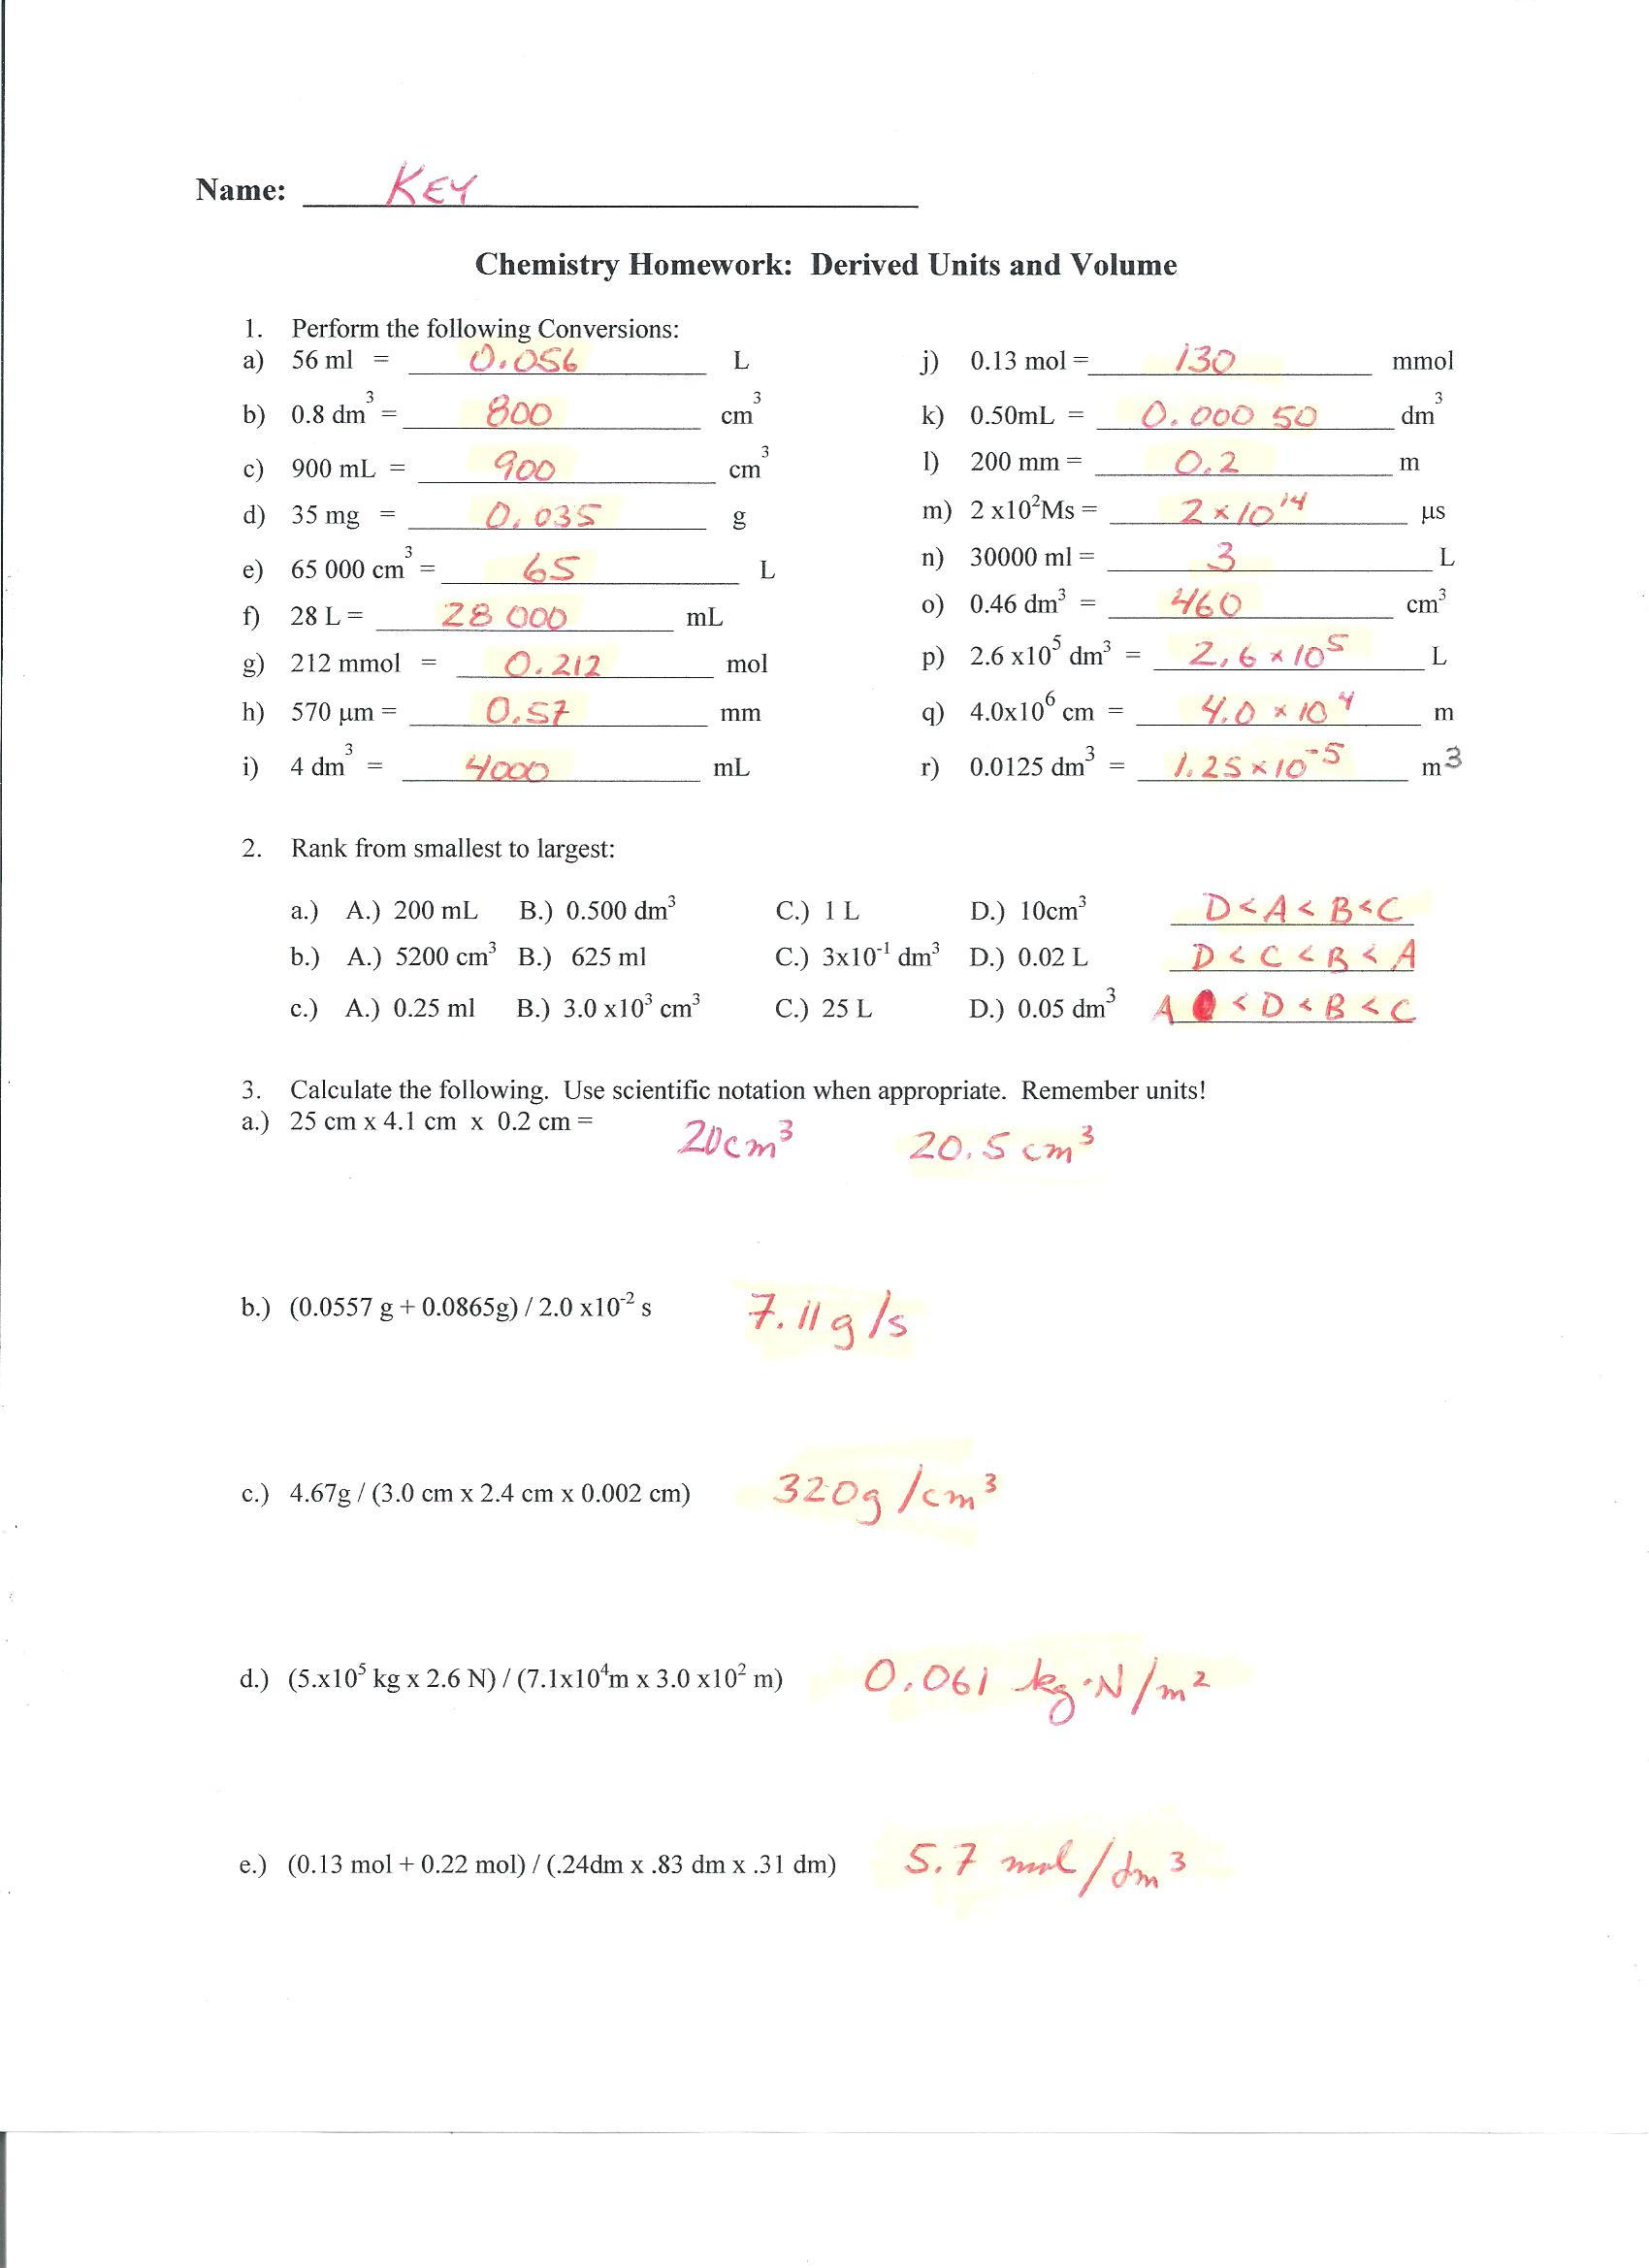 KateHo » Scientific Notation Chemistry Worksheet Answers Kidz additionally Scientific Notation Worksheet Chemistry – Fronteirastral also Exponential Notation Worksheets Worksheets Scientific Notation likewise Mr  D 's CP Chemistry 2018 2019 Web Page besides Mesmerizing Worksheet Scientific Notation Answers In Chemistry additionally Scientific Notation together with Worksheet 2 Scientific Notation Answers as Well as 22 Luxury besides 16  Likesoy Math Handbook Transparency Worksheet Scientific Notation furthermore Quiz   Worksheet   Significant Figures and Scientific Notation further scientific notation worksheet with answers Initiative of scientific also  furthermore Scientific Notation Worksheets likewise  moreover  further 79 best Chemistry images on Pinterest   Science chemistry  Chemistry further Multiplying And Dividing Scientific Notation Worksheets. on chemistry scientific notation worksheet answers